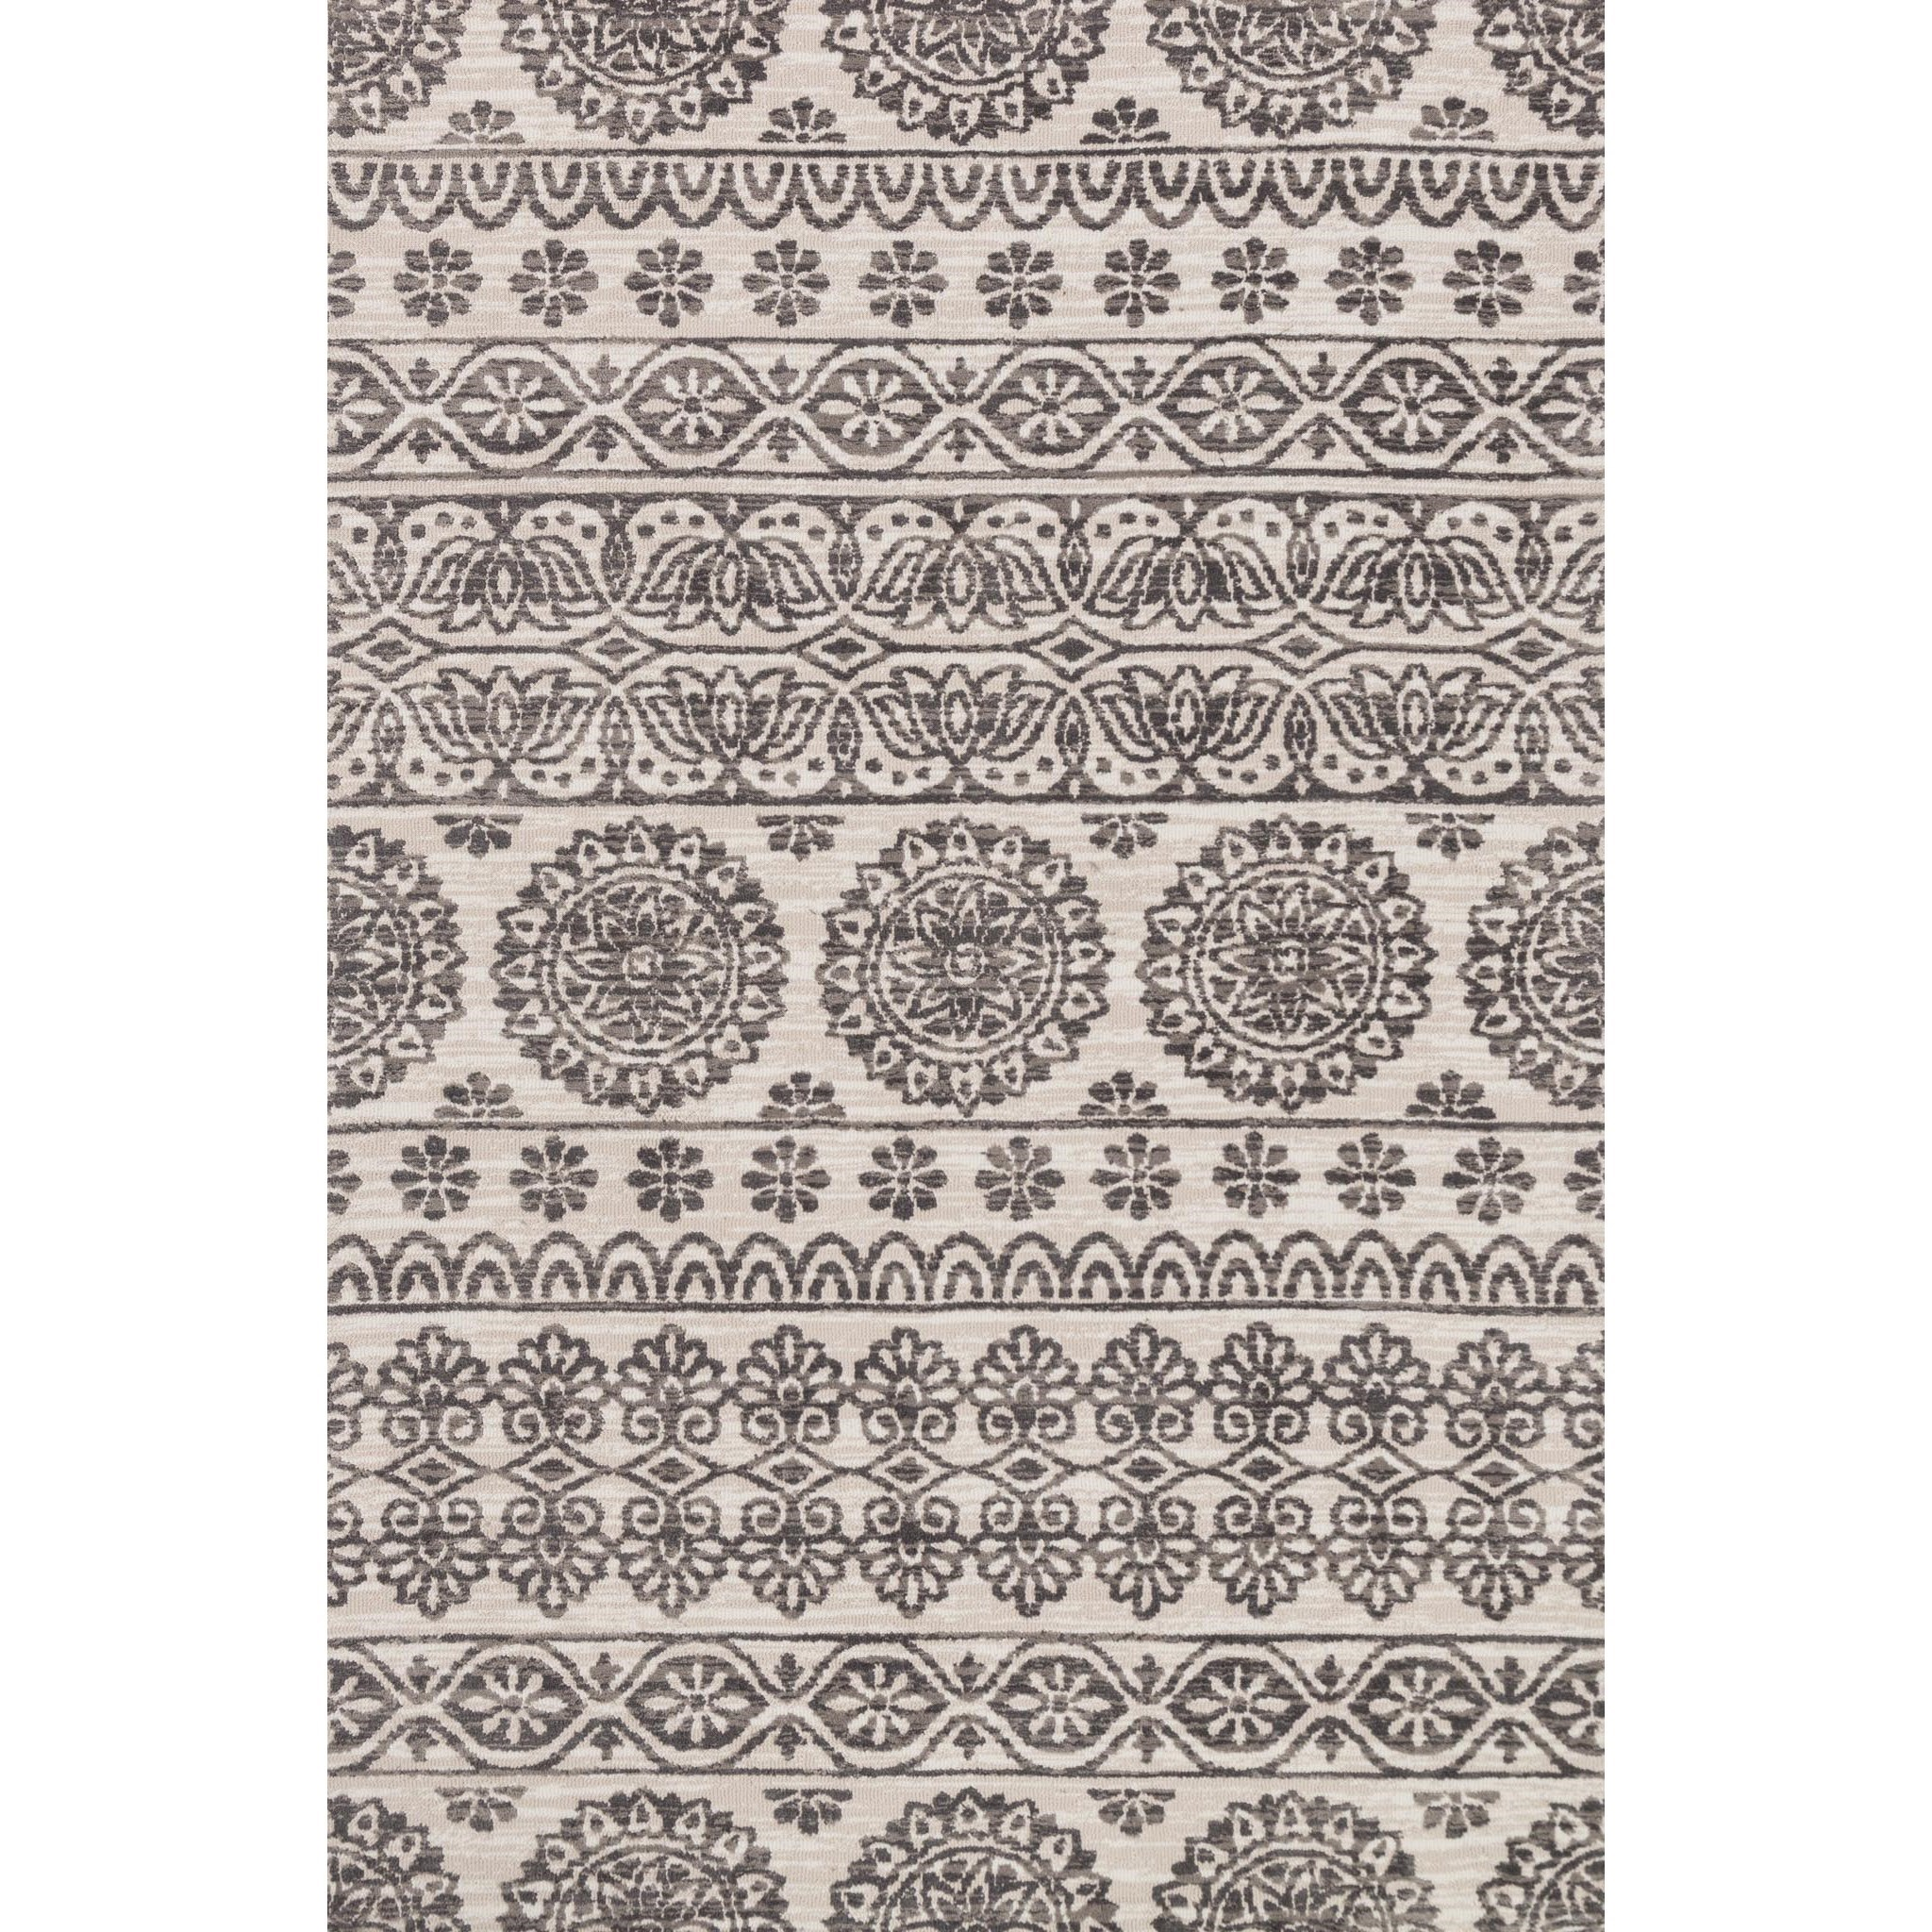 2 by 3 rug outdoor magnolia home by joanna gaines for loloi lotus 2 3